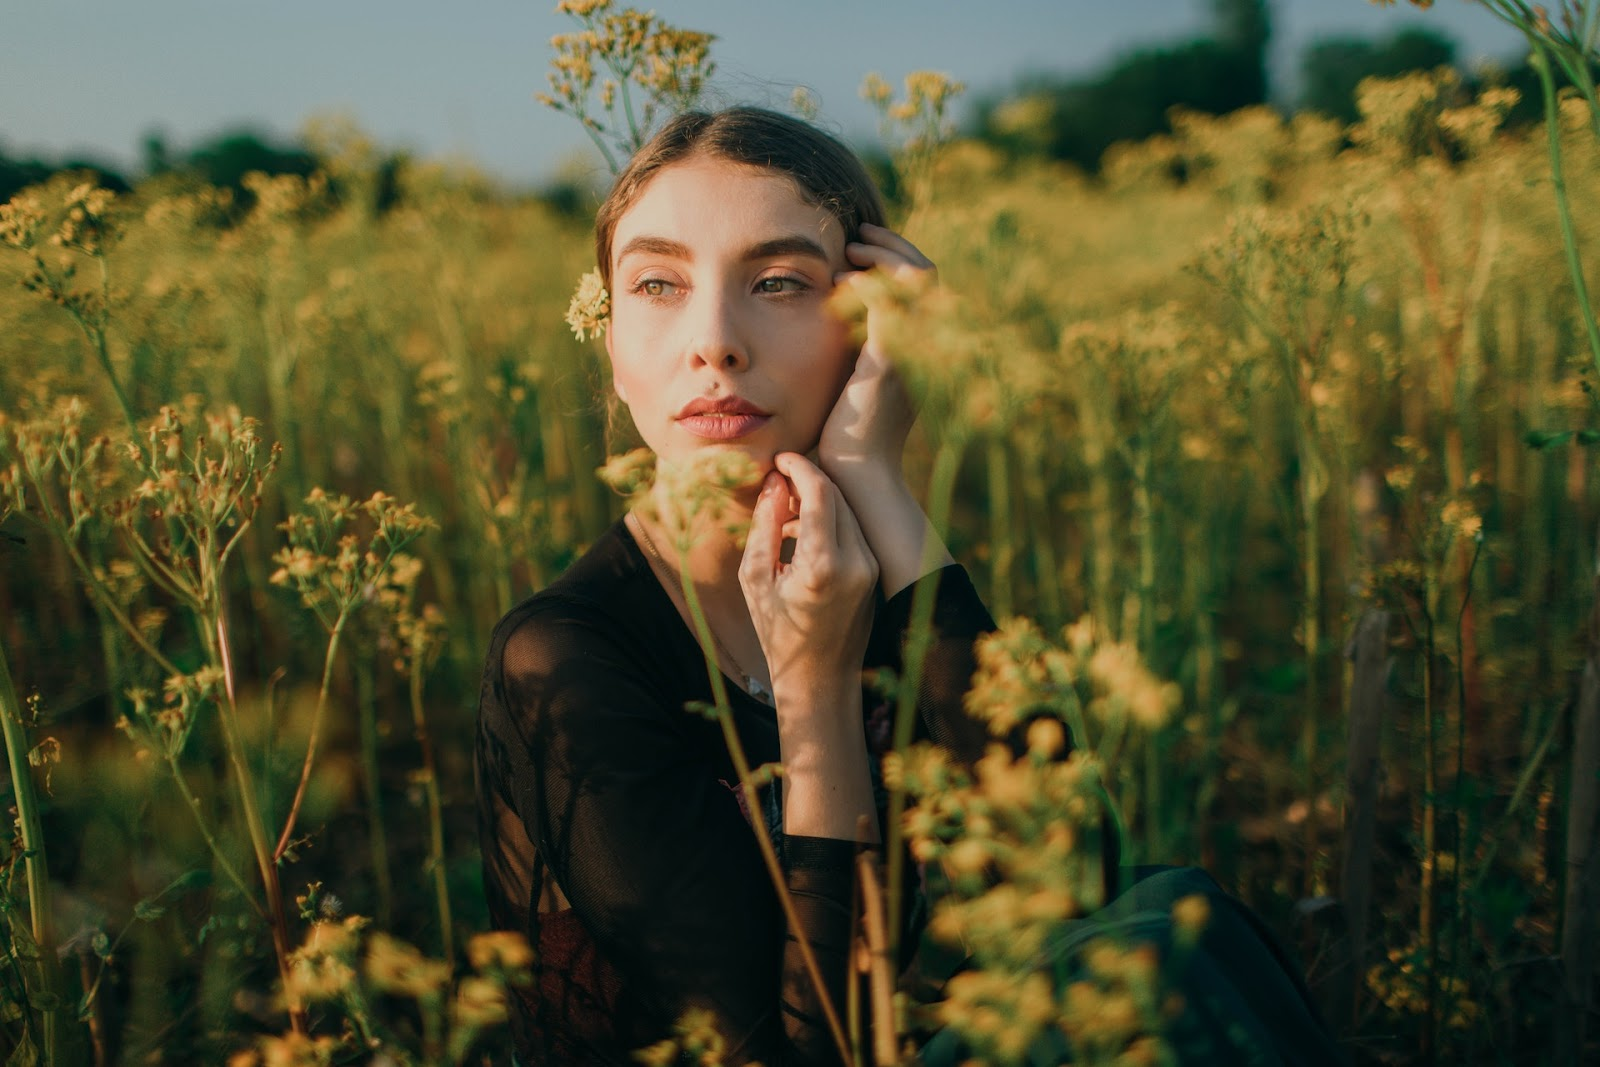 woman in a field of flowers portrait photography